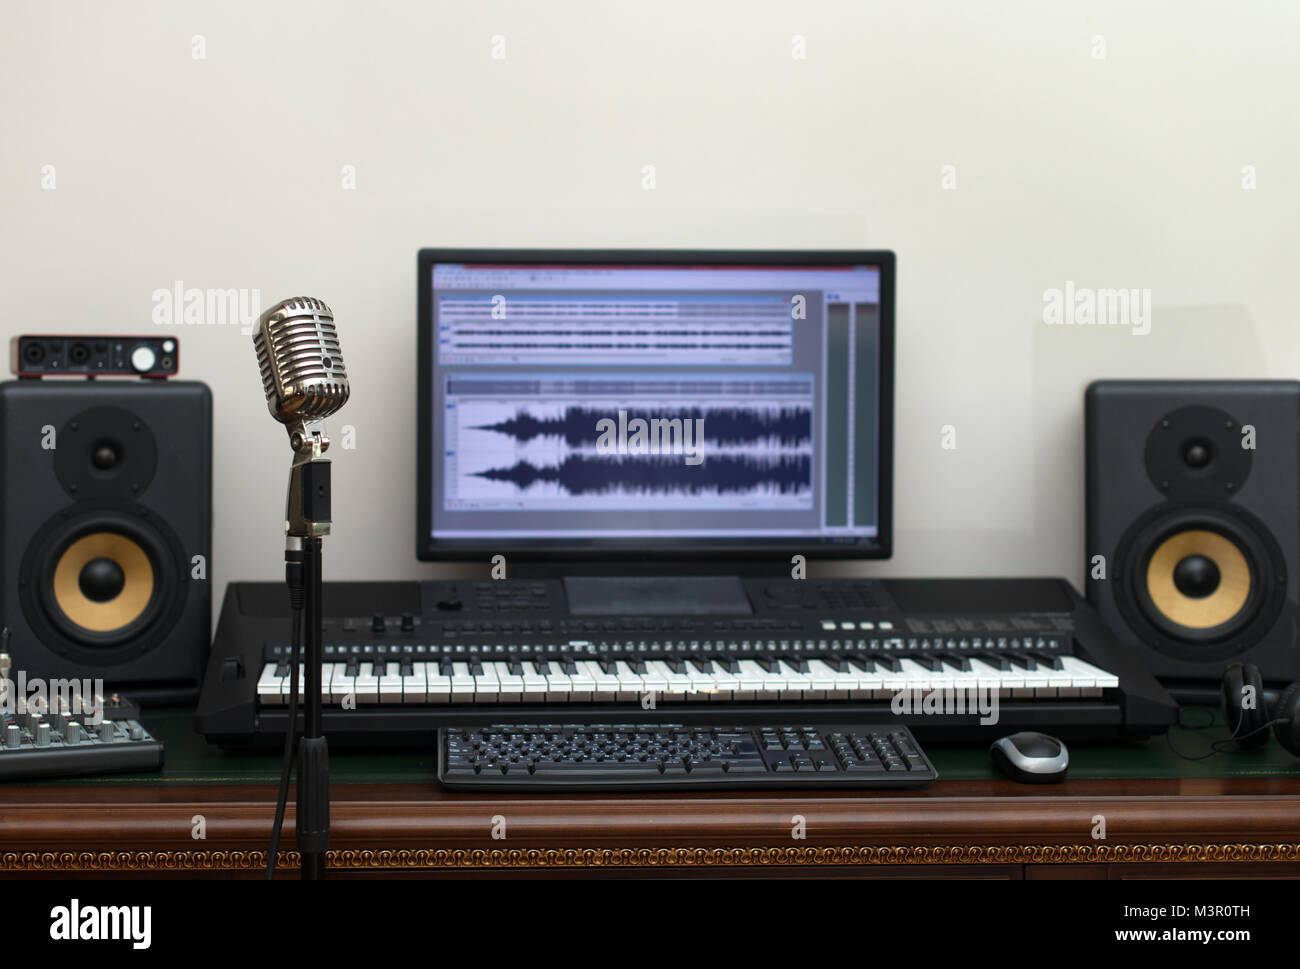 home recording studio with professional monitors and midi keyboard stock photo 174453233 alamy. Black Bedroom Furniture Sets. Home Design Ideas